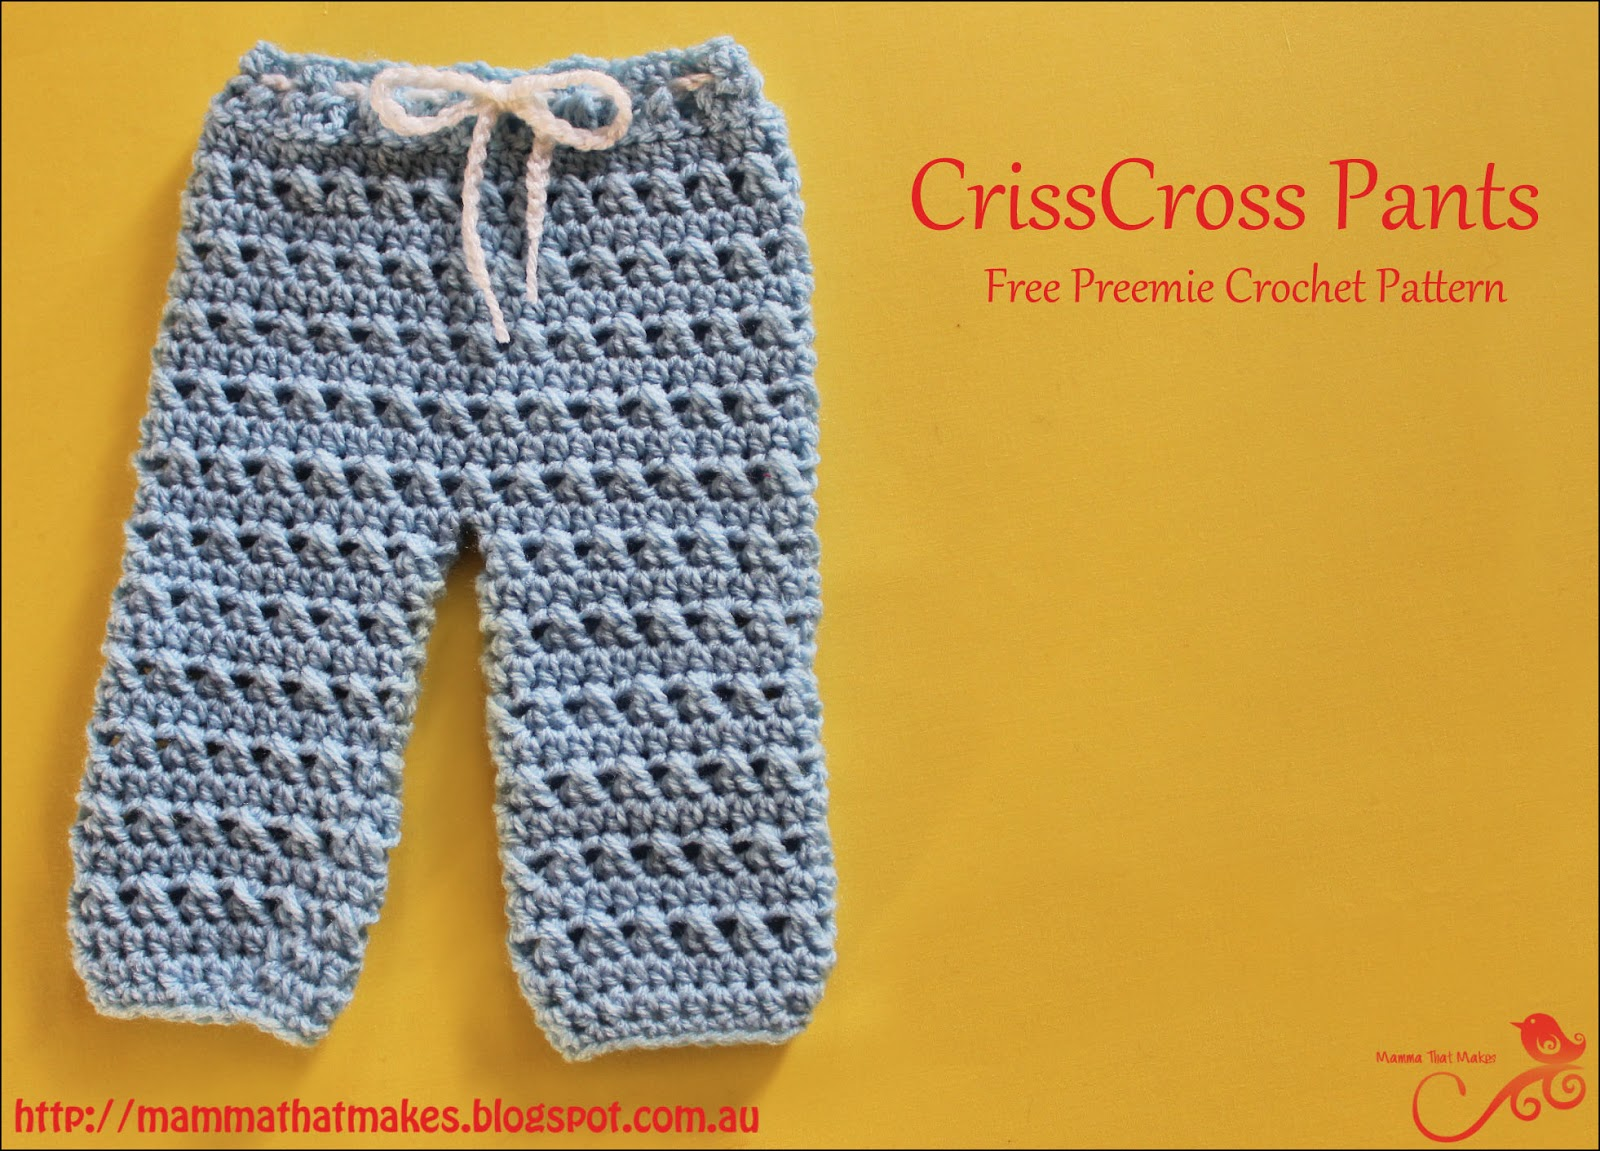 Free Crochet Pattern Preemie Clothes : Mamma That Makes: CrissCross Pants - Free Preemie Crochet ...